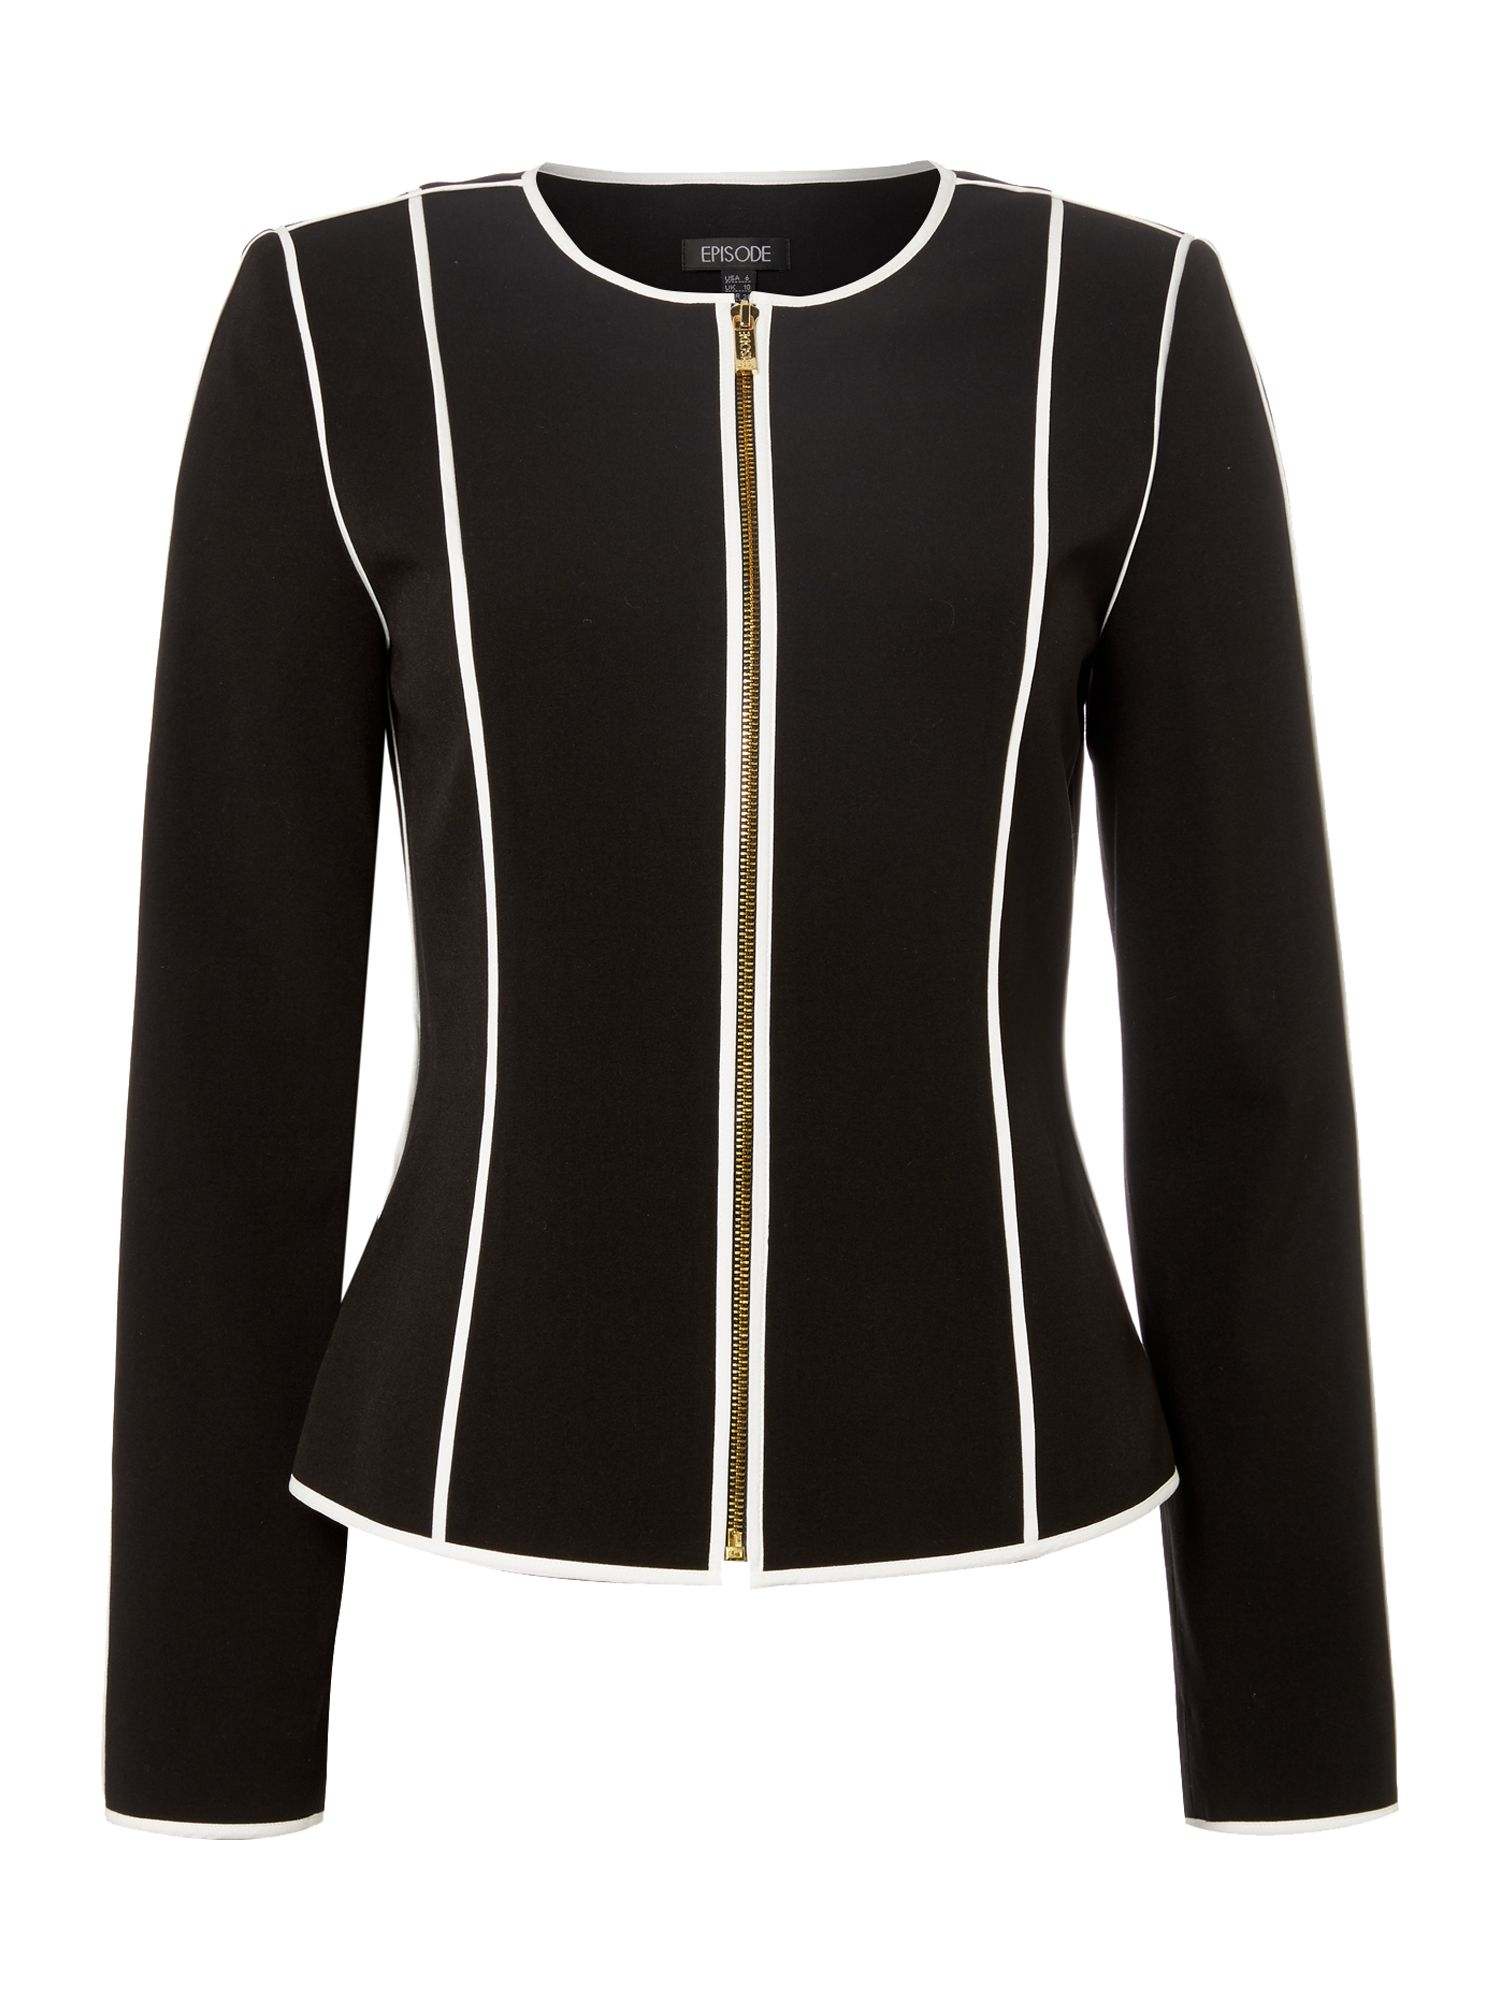 Episode Episode Jacket with contrast piping, Black